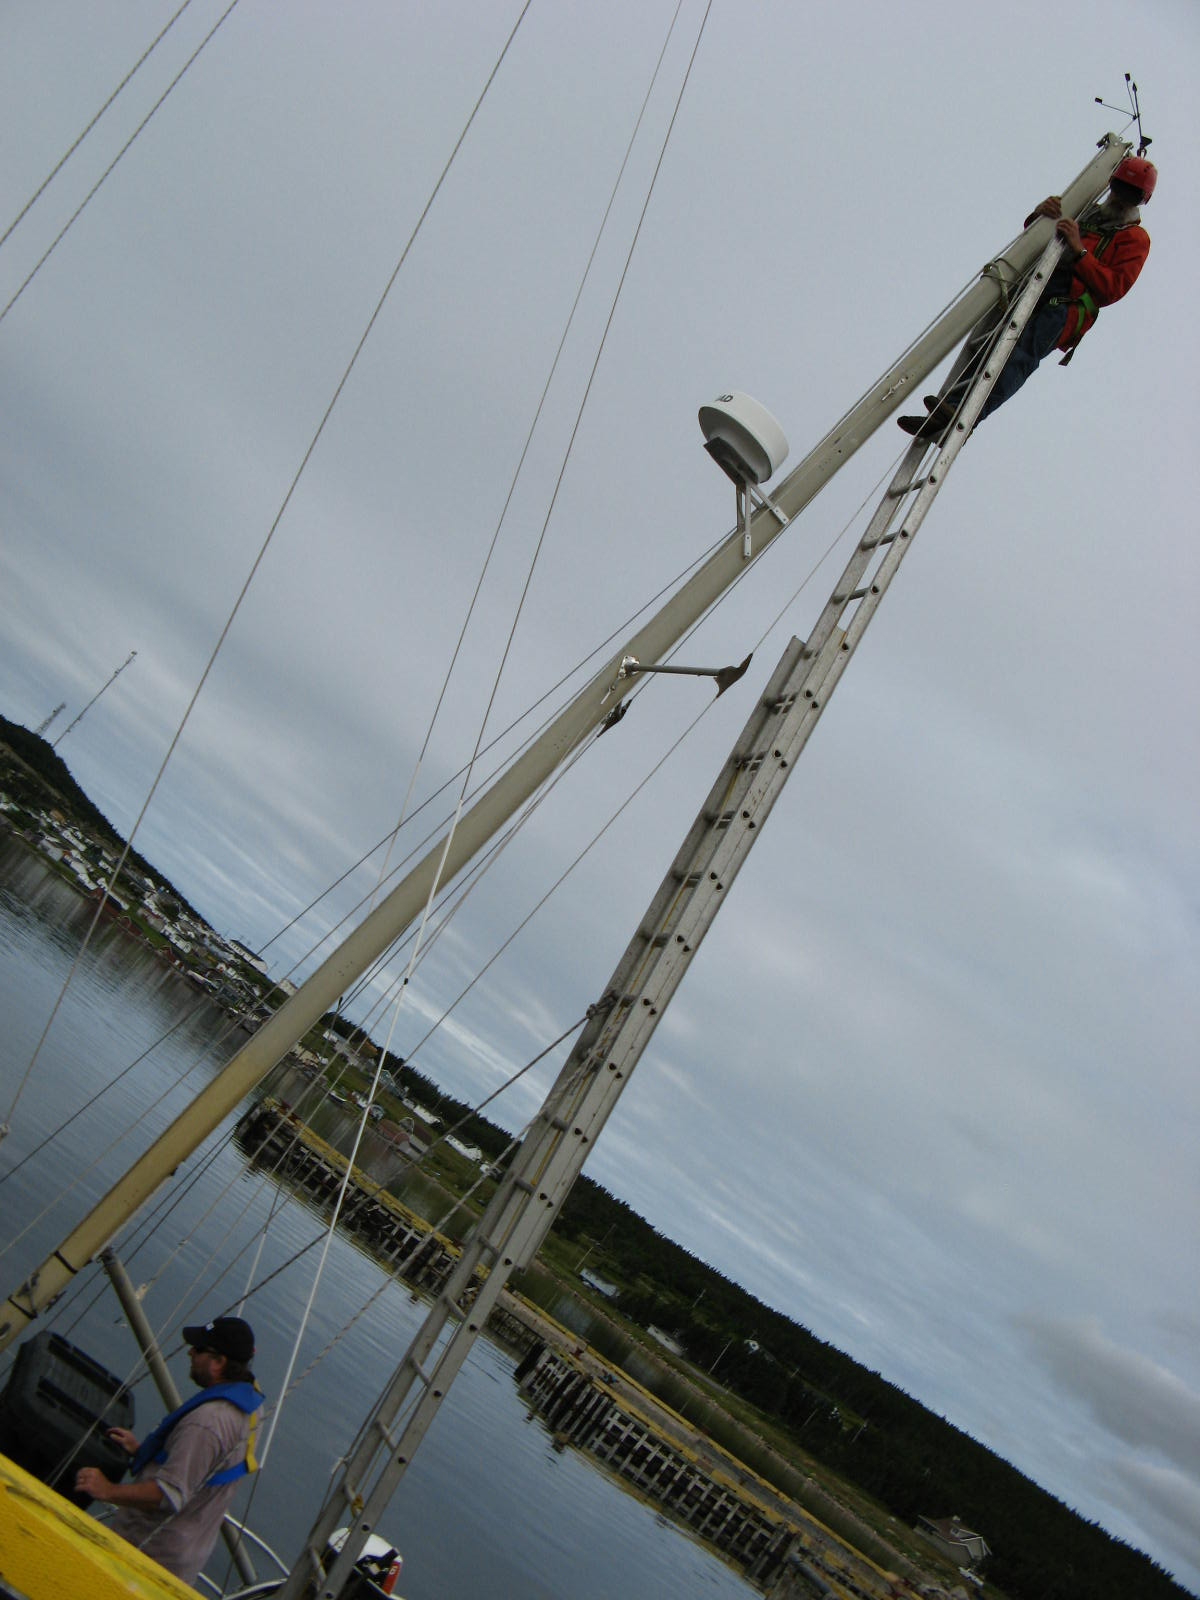 Click image for larger version  Name:Using Ladder to climb mizzen mast - fr side - 20110813.JPG Views:83 Size:172.3 KB ID:57739